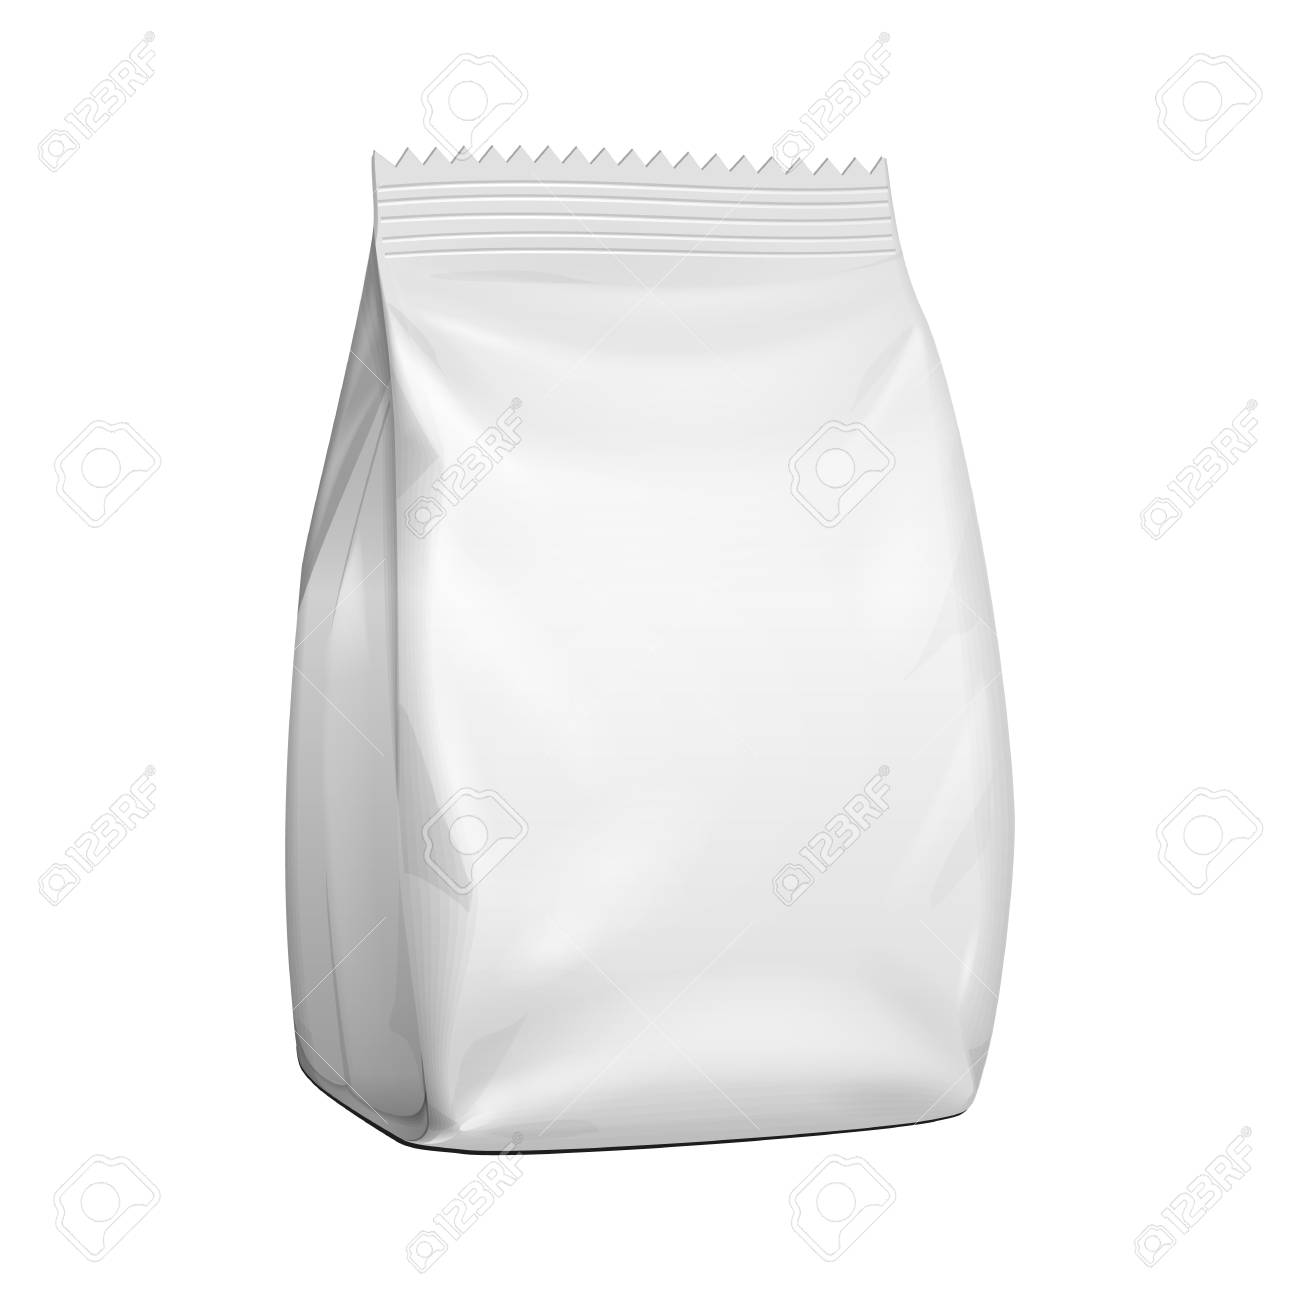 Mockup Blank Stand Up Pouch Snack Sachet Bag. Mock Up, Template. Illustration Isolated On White Background. Ready For Your Design. Product Packaging. Vector EPS10 - 122826969